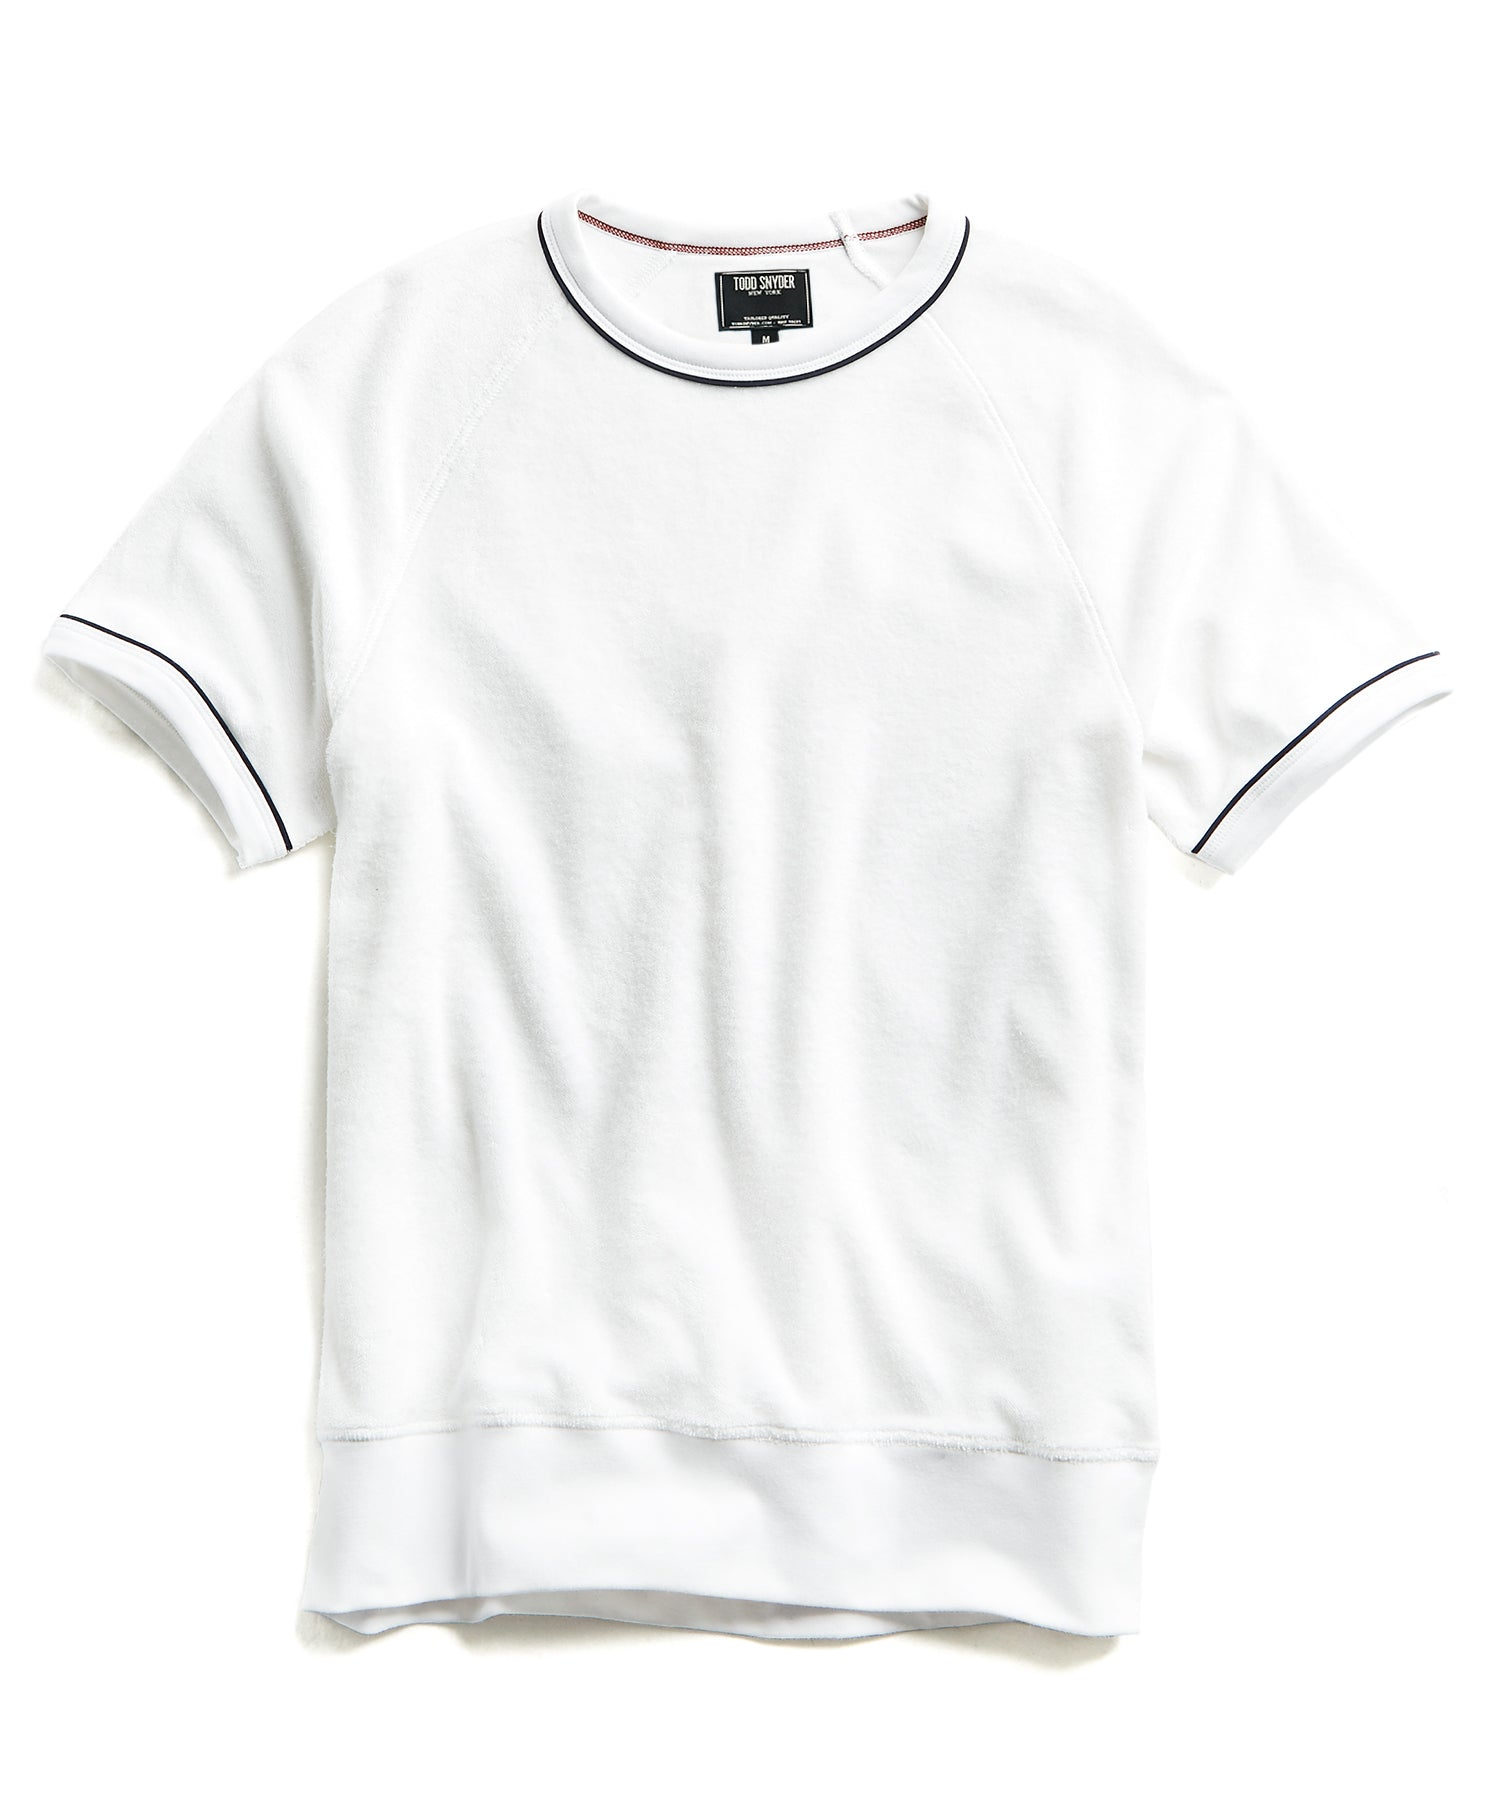 Piped Terry Cloth Short Sleeve Sweatshirt in White